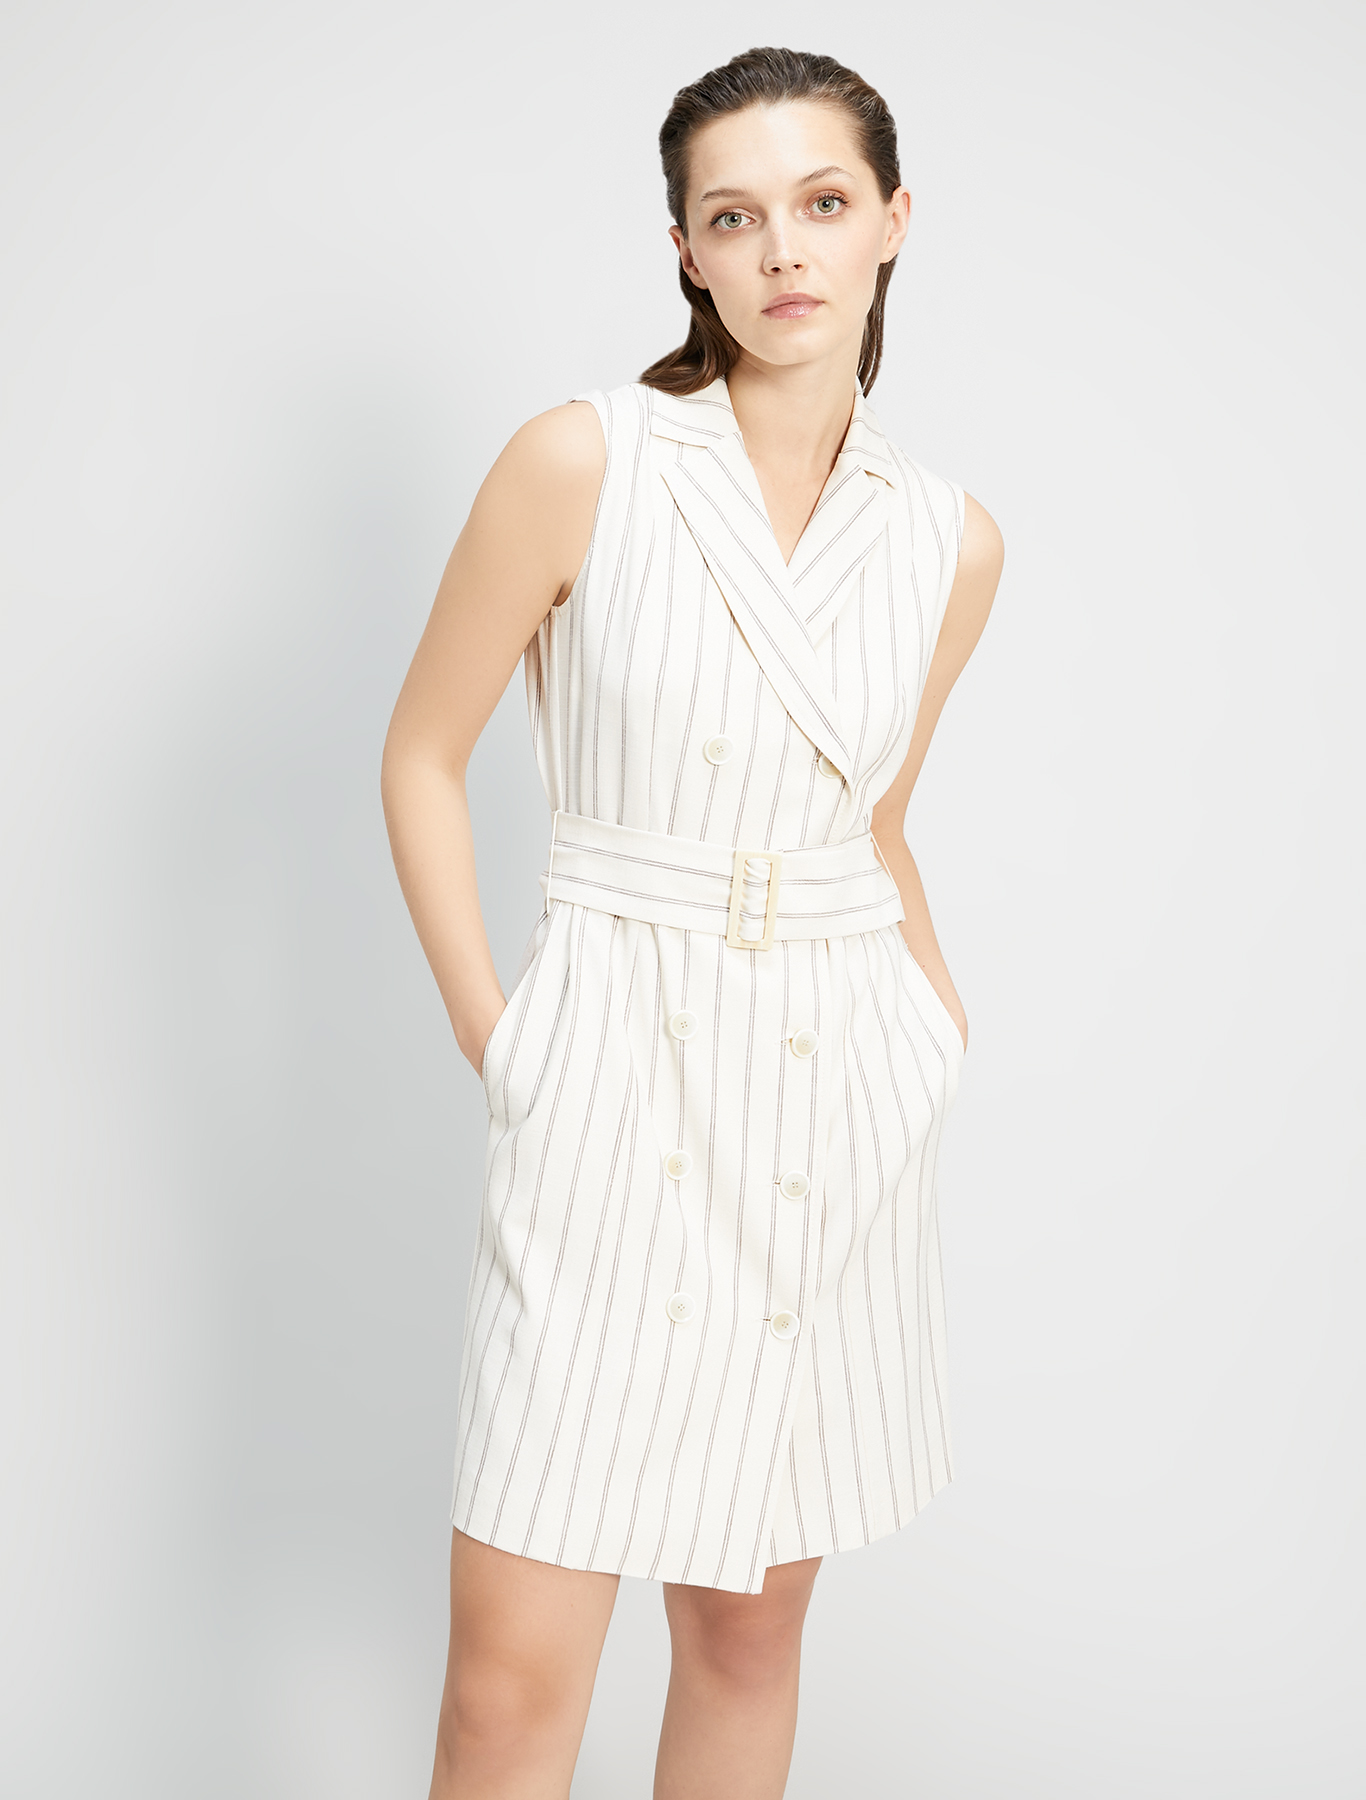 Slubbed basketweave shirt dress - beige pattern - pennyblack